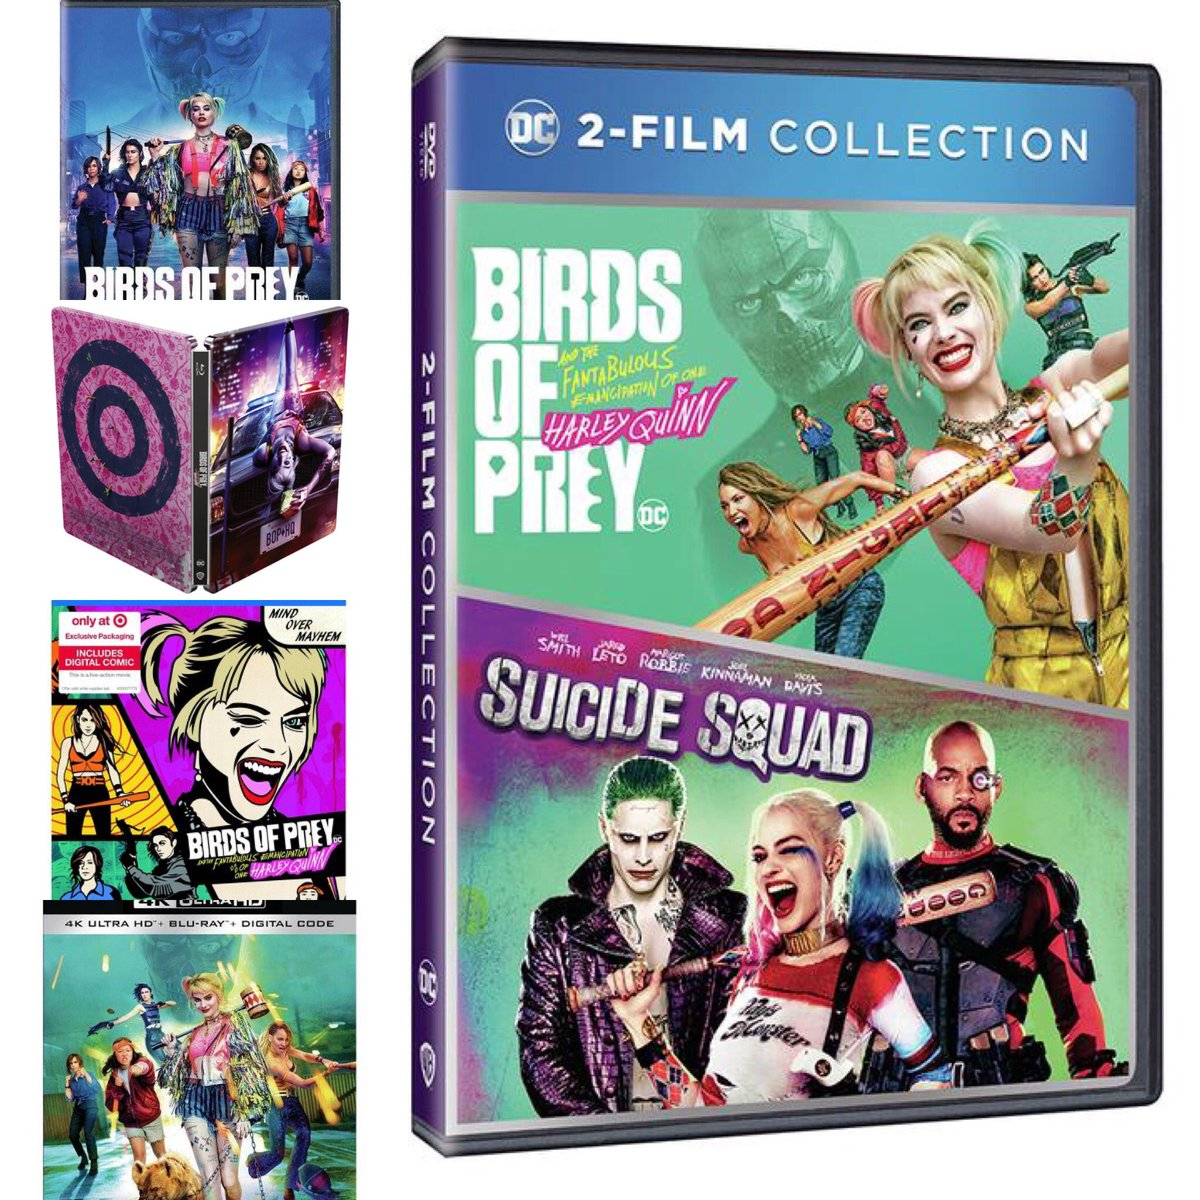 Harley Quinn Updates On Twitter Birds Of Prey Is Now Available On Blu Ray Dvd 4k Ultra With A Suicide Squad Bundle And Exclusive Packaging At Target Best Buy Https T Co Cacqawbit6